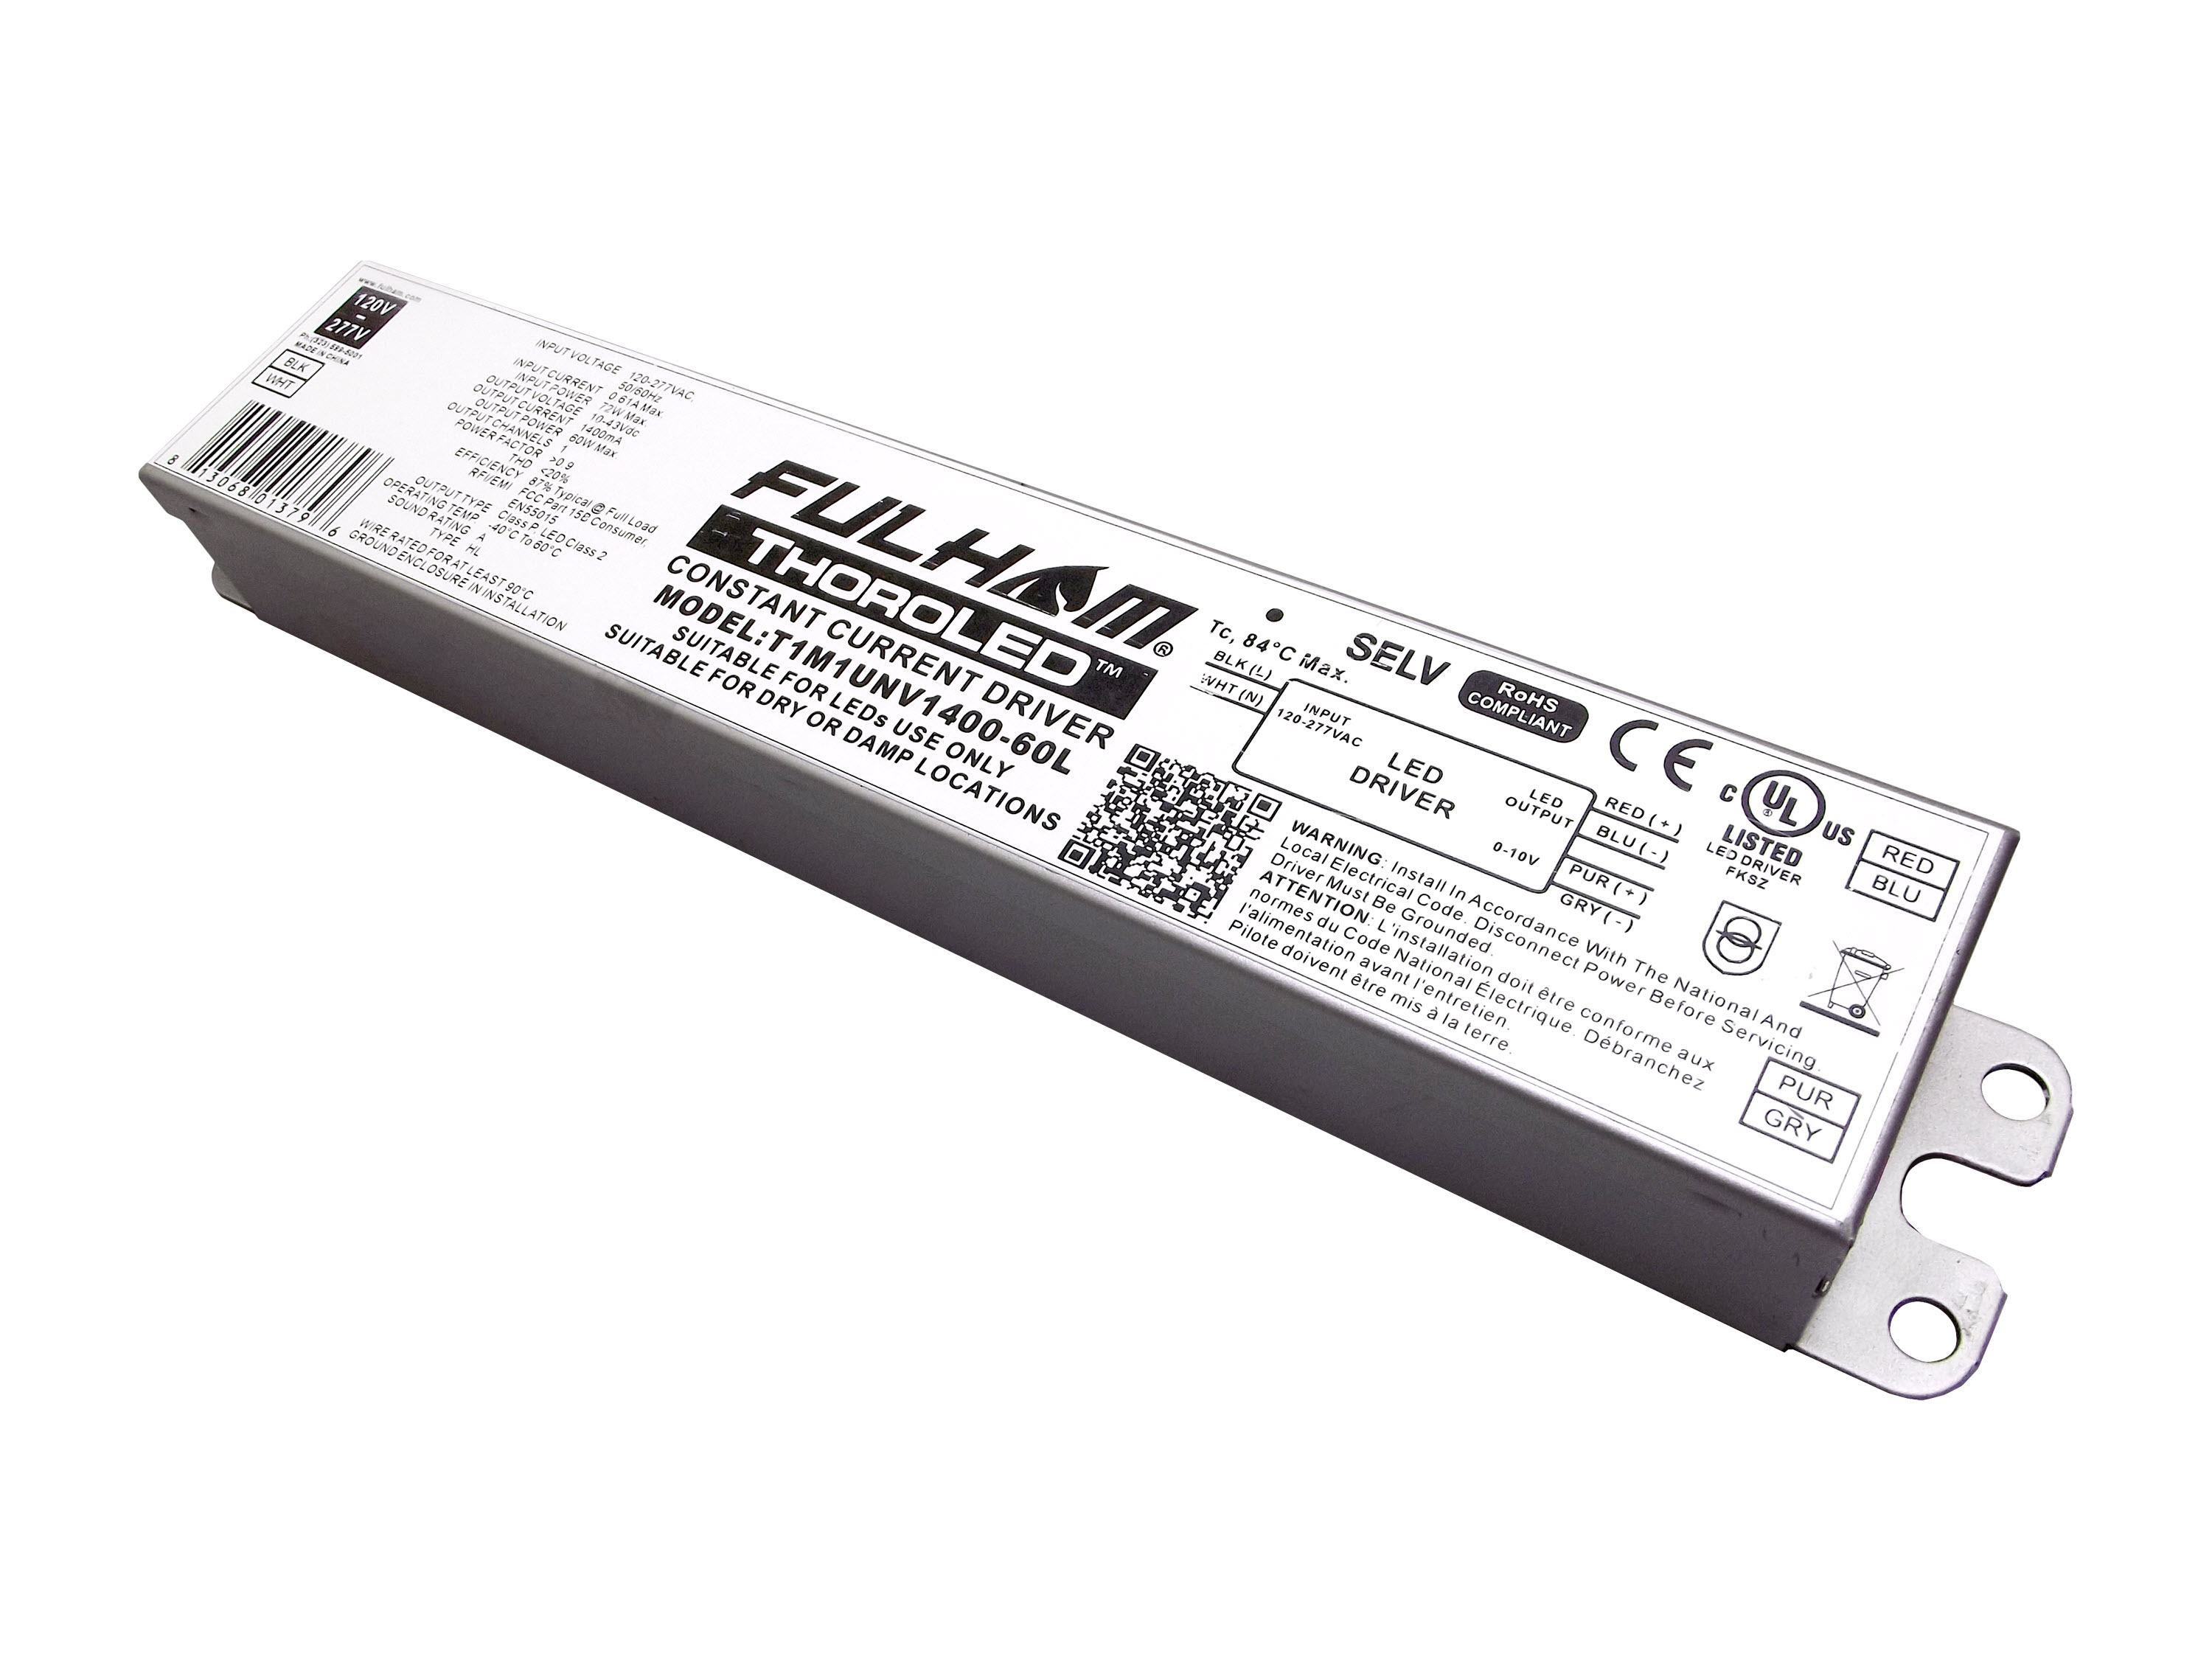 Fulham Receives Class P Listing For 60w Led Drivers From Underwriter